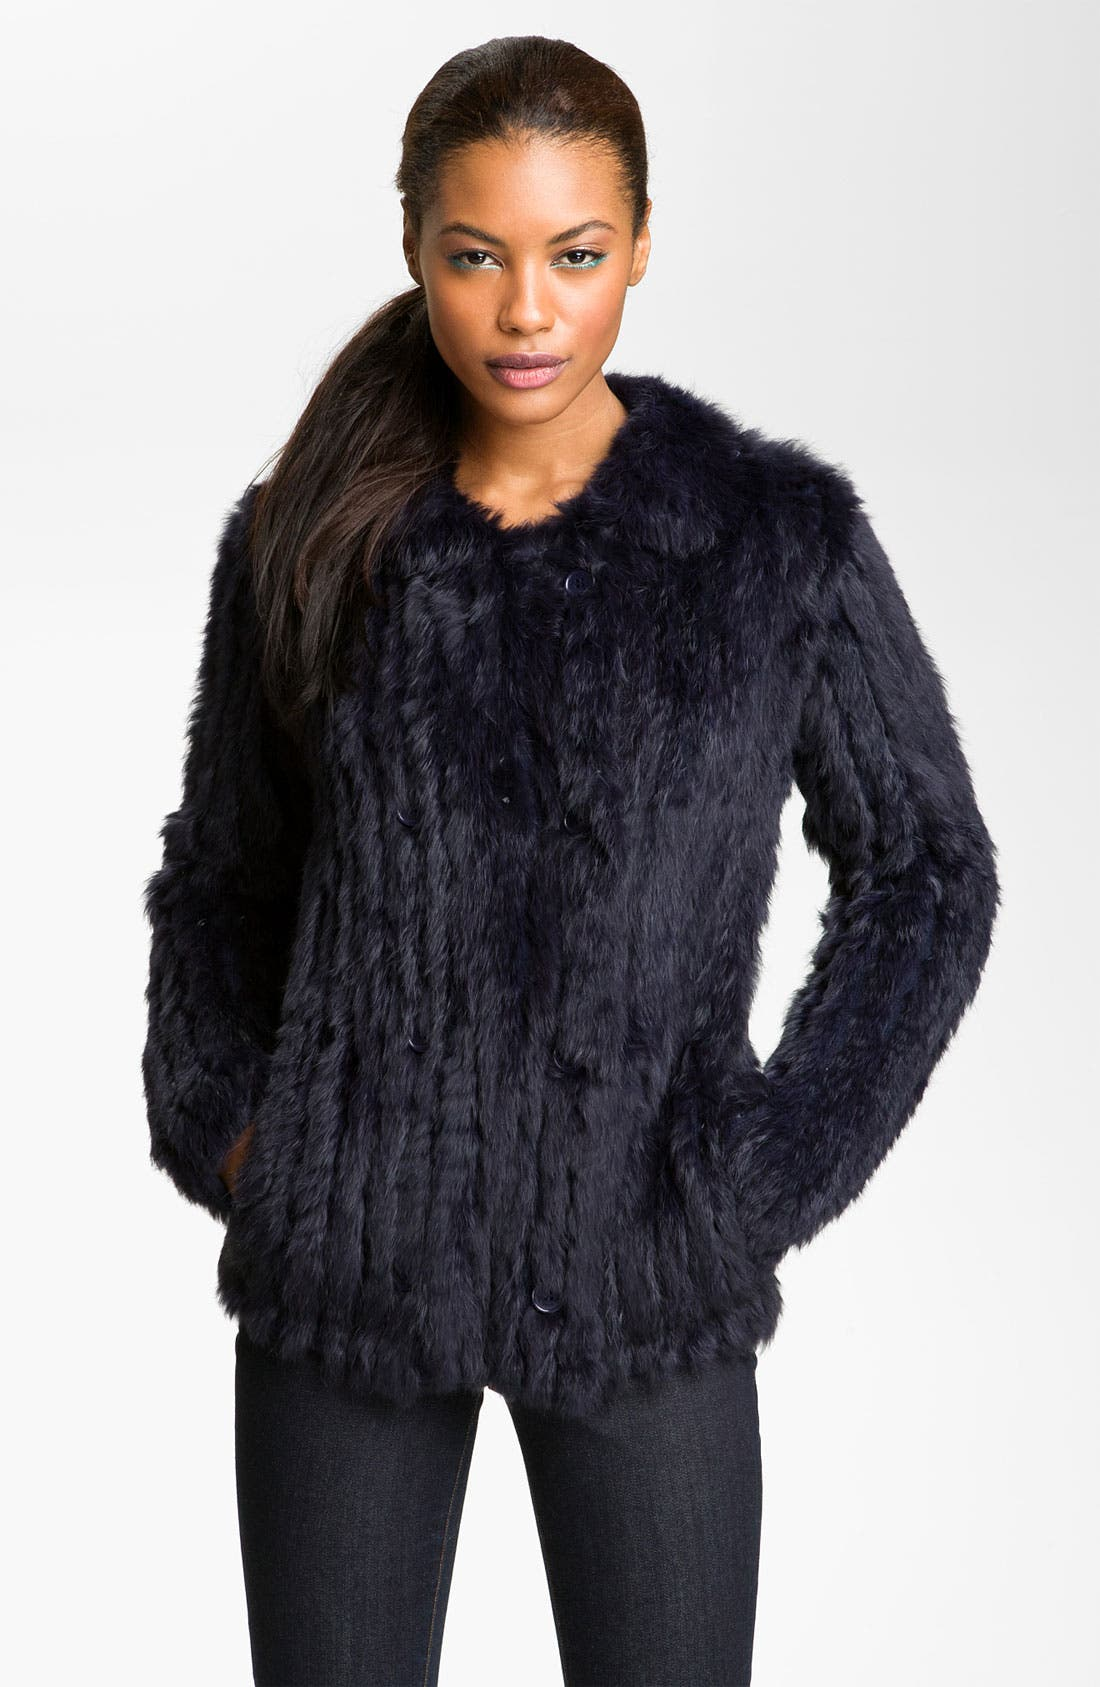 Alternate Image 1 Selected - MARC BY MARC JACOBS 'Katrina' Genuine Rabbit Fur Jacket